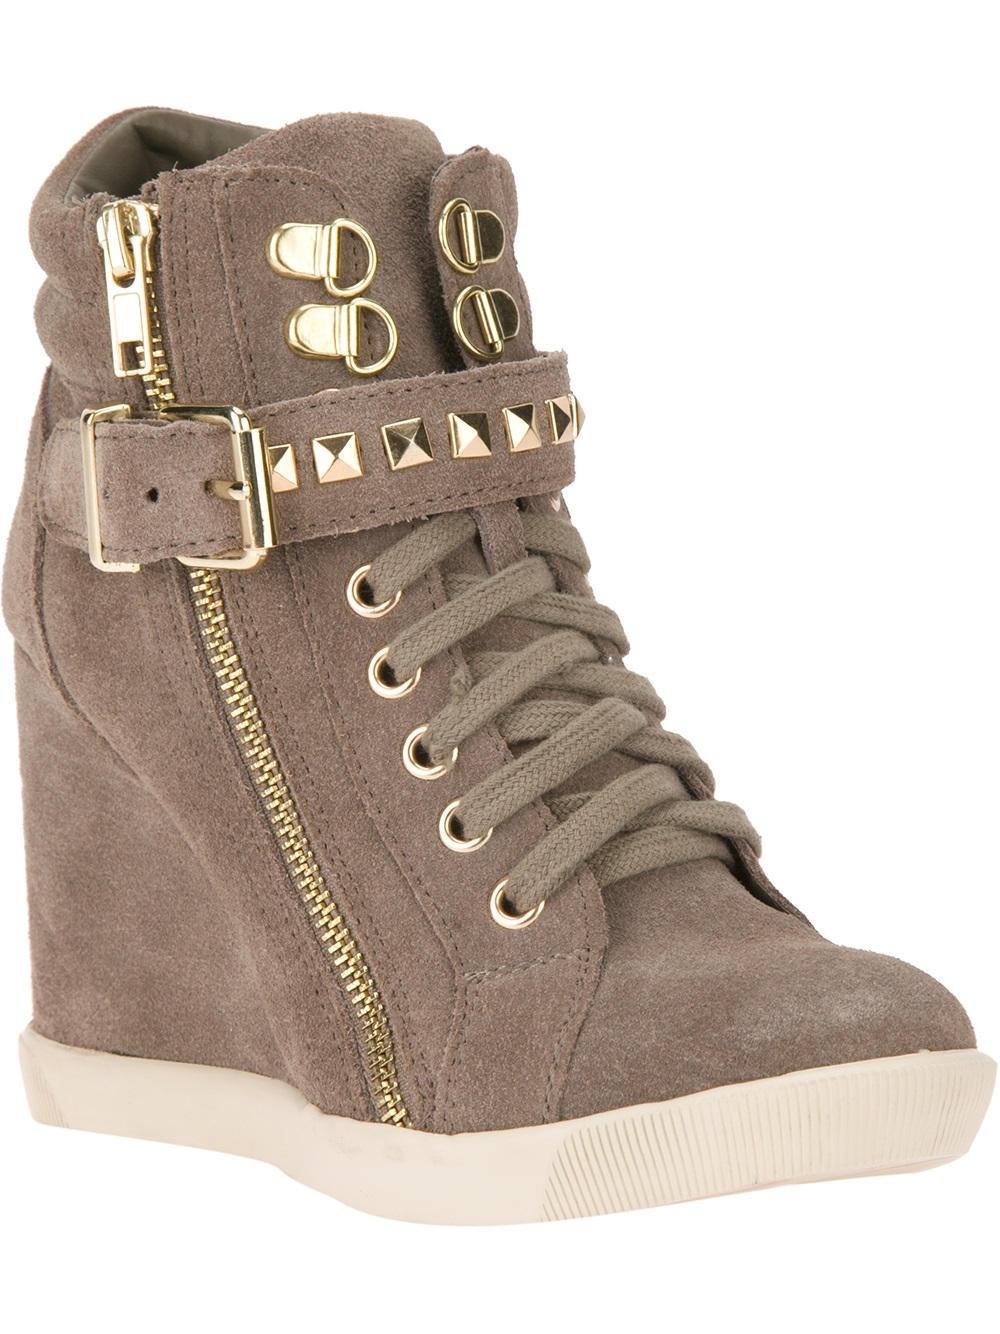 Lyst Steve Madden Obsess Wedge Sneaker In Brown